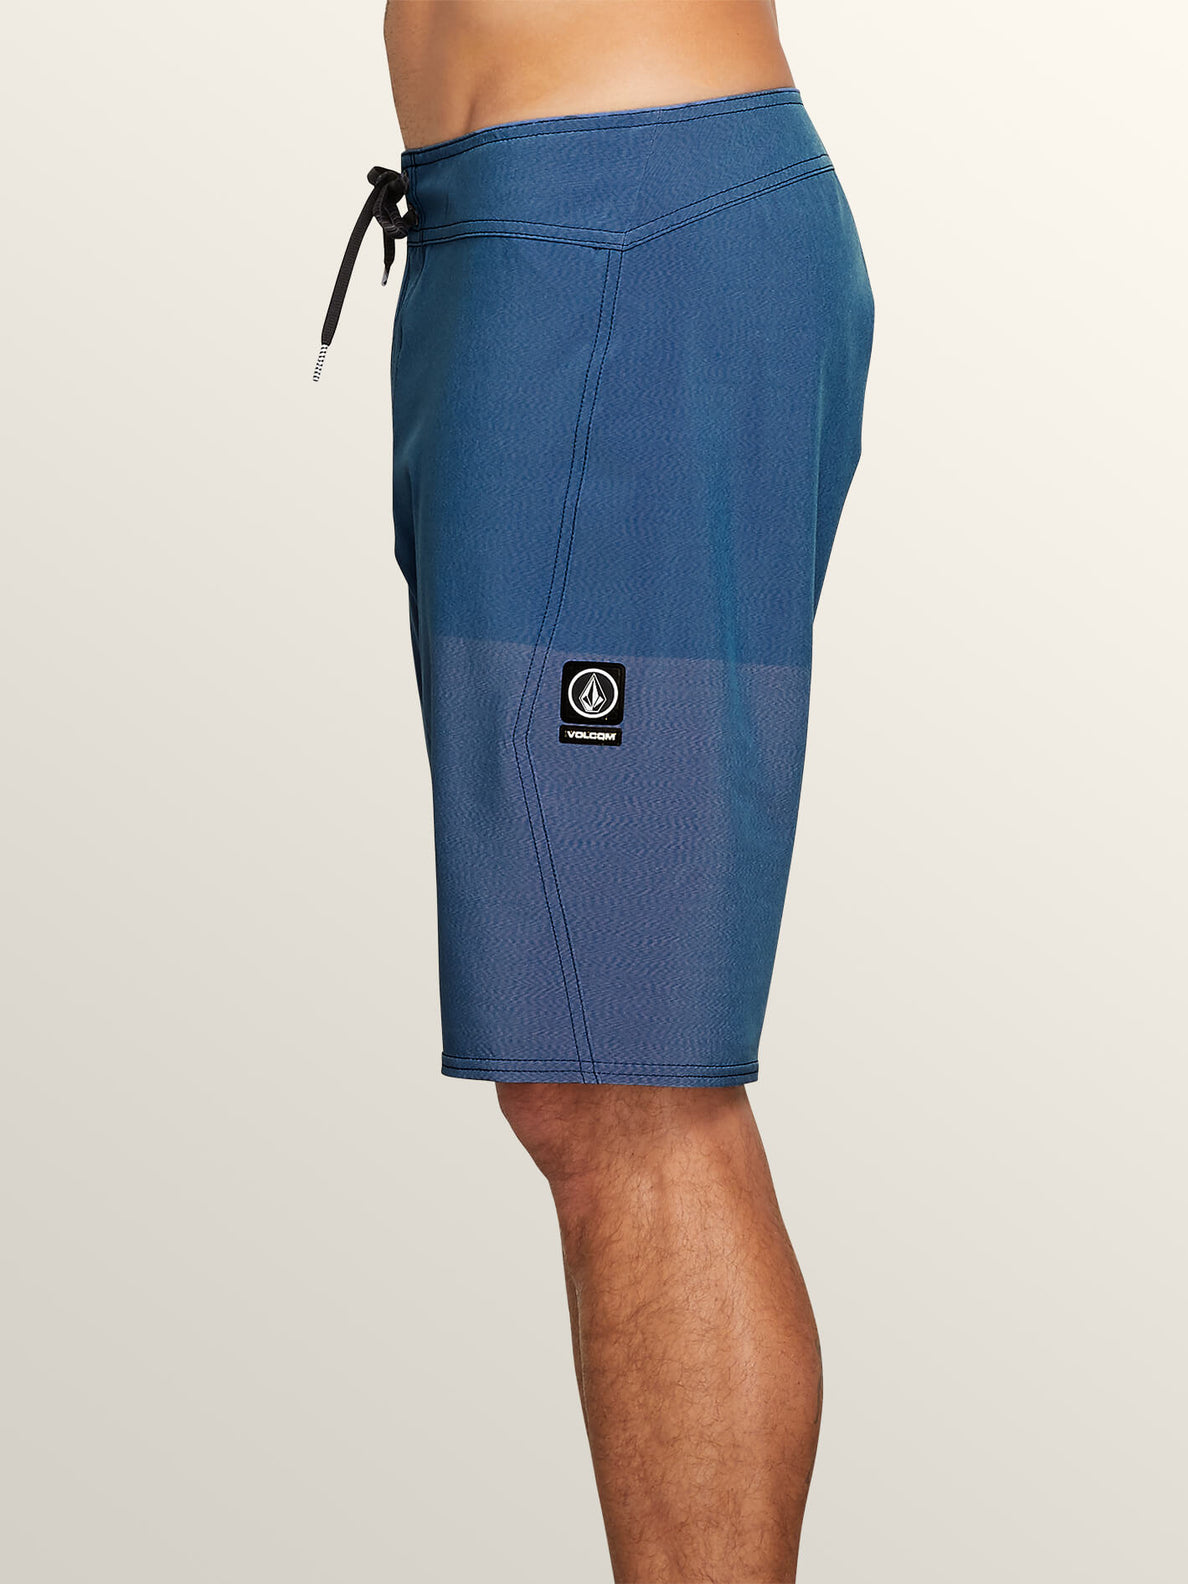 Lido Heather Mod Boardshorts In Jasper Blue, Alternate View